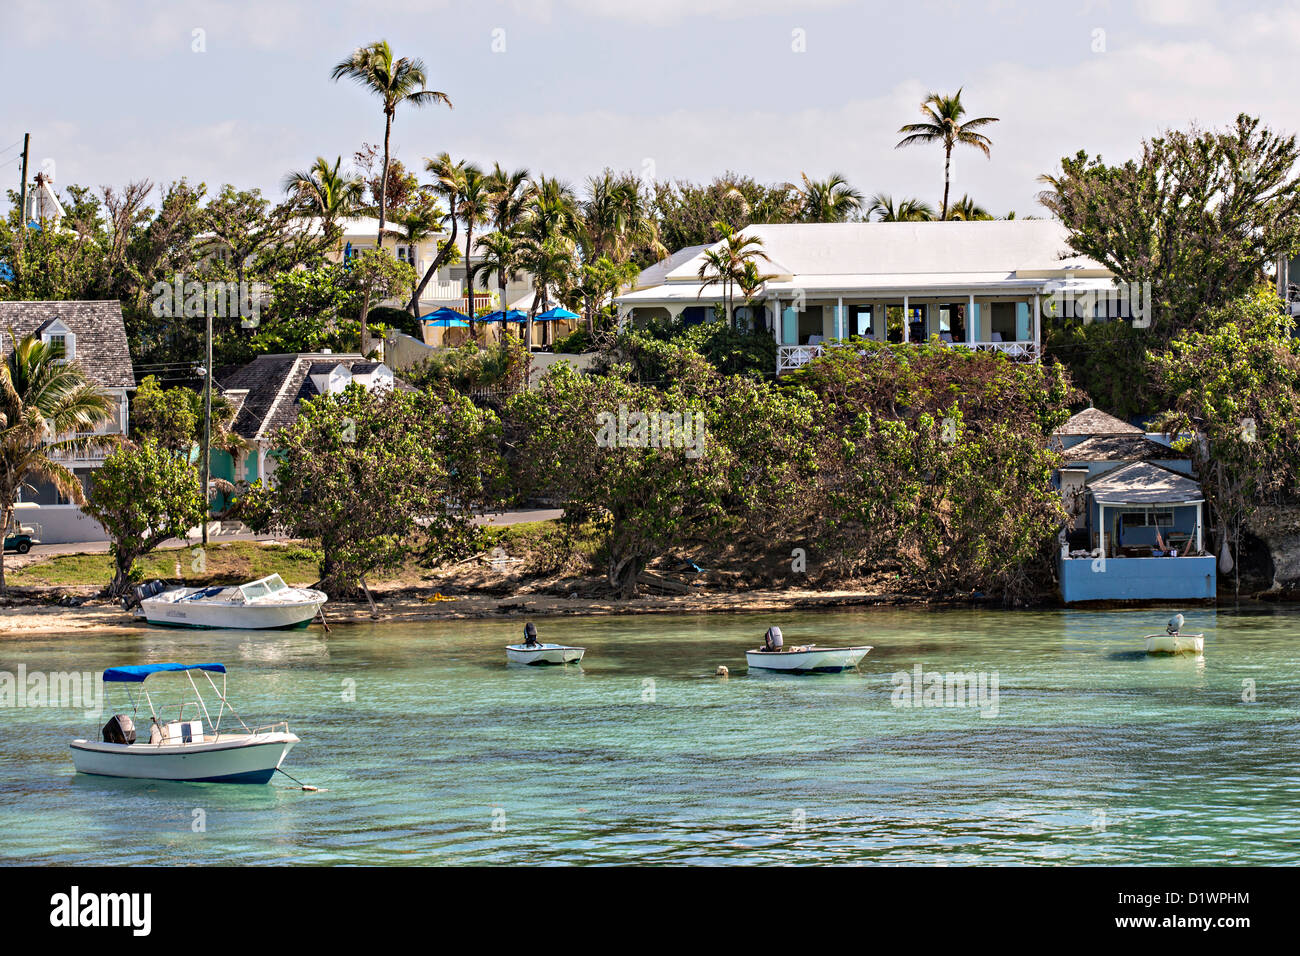 Homes in Dunmore Town, Harbour Island, The Bahamas. - Stock Image